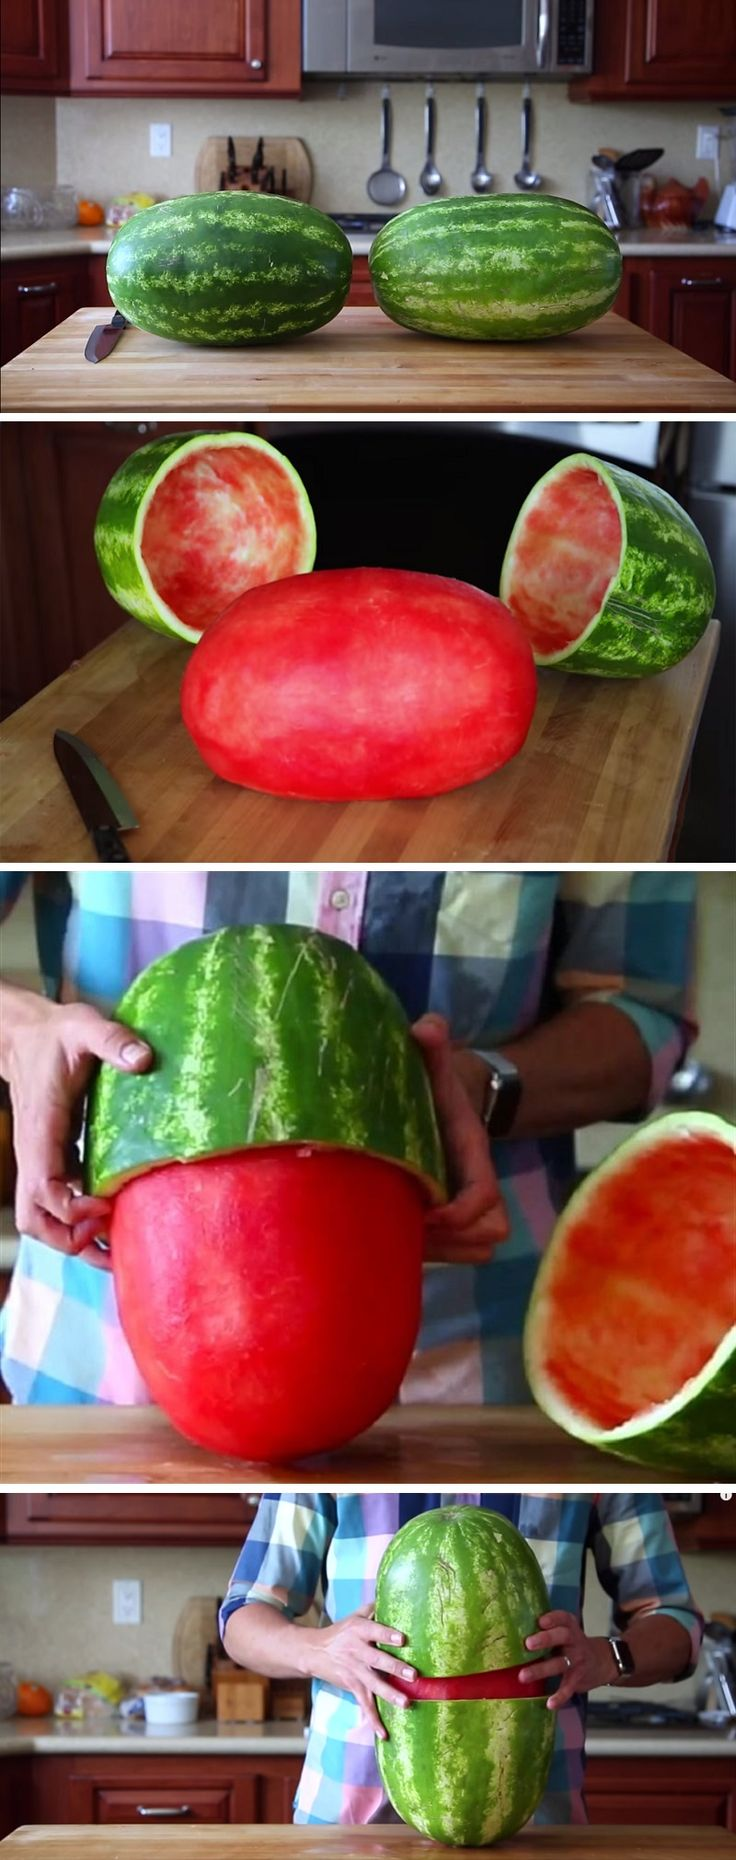 This watermelon trick is amazing! Sure to impress any party guests! #watermelon